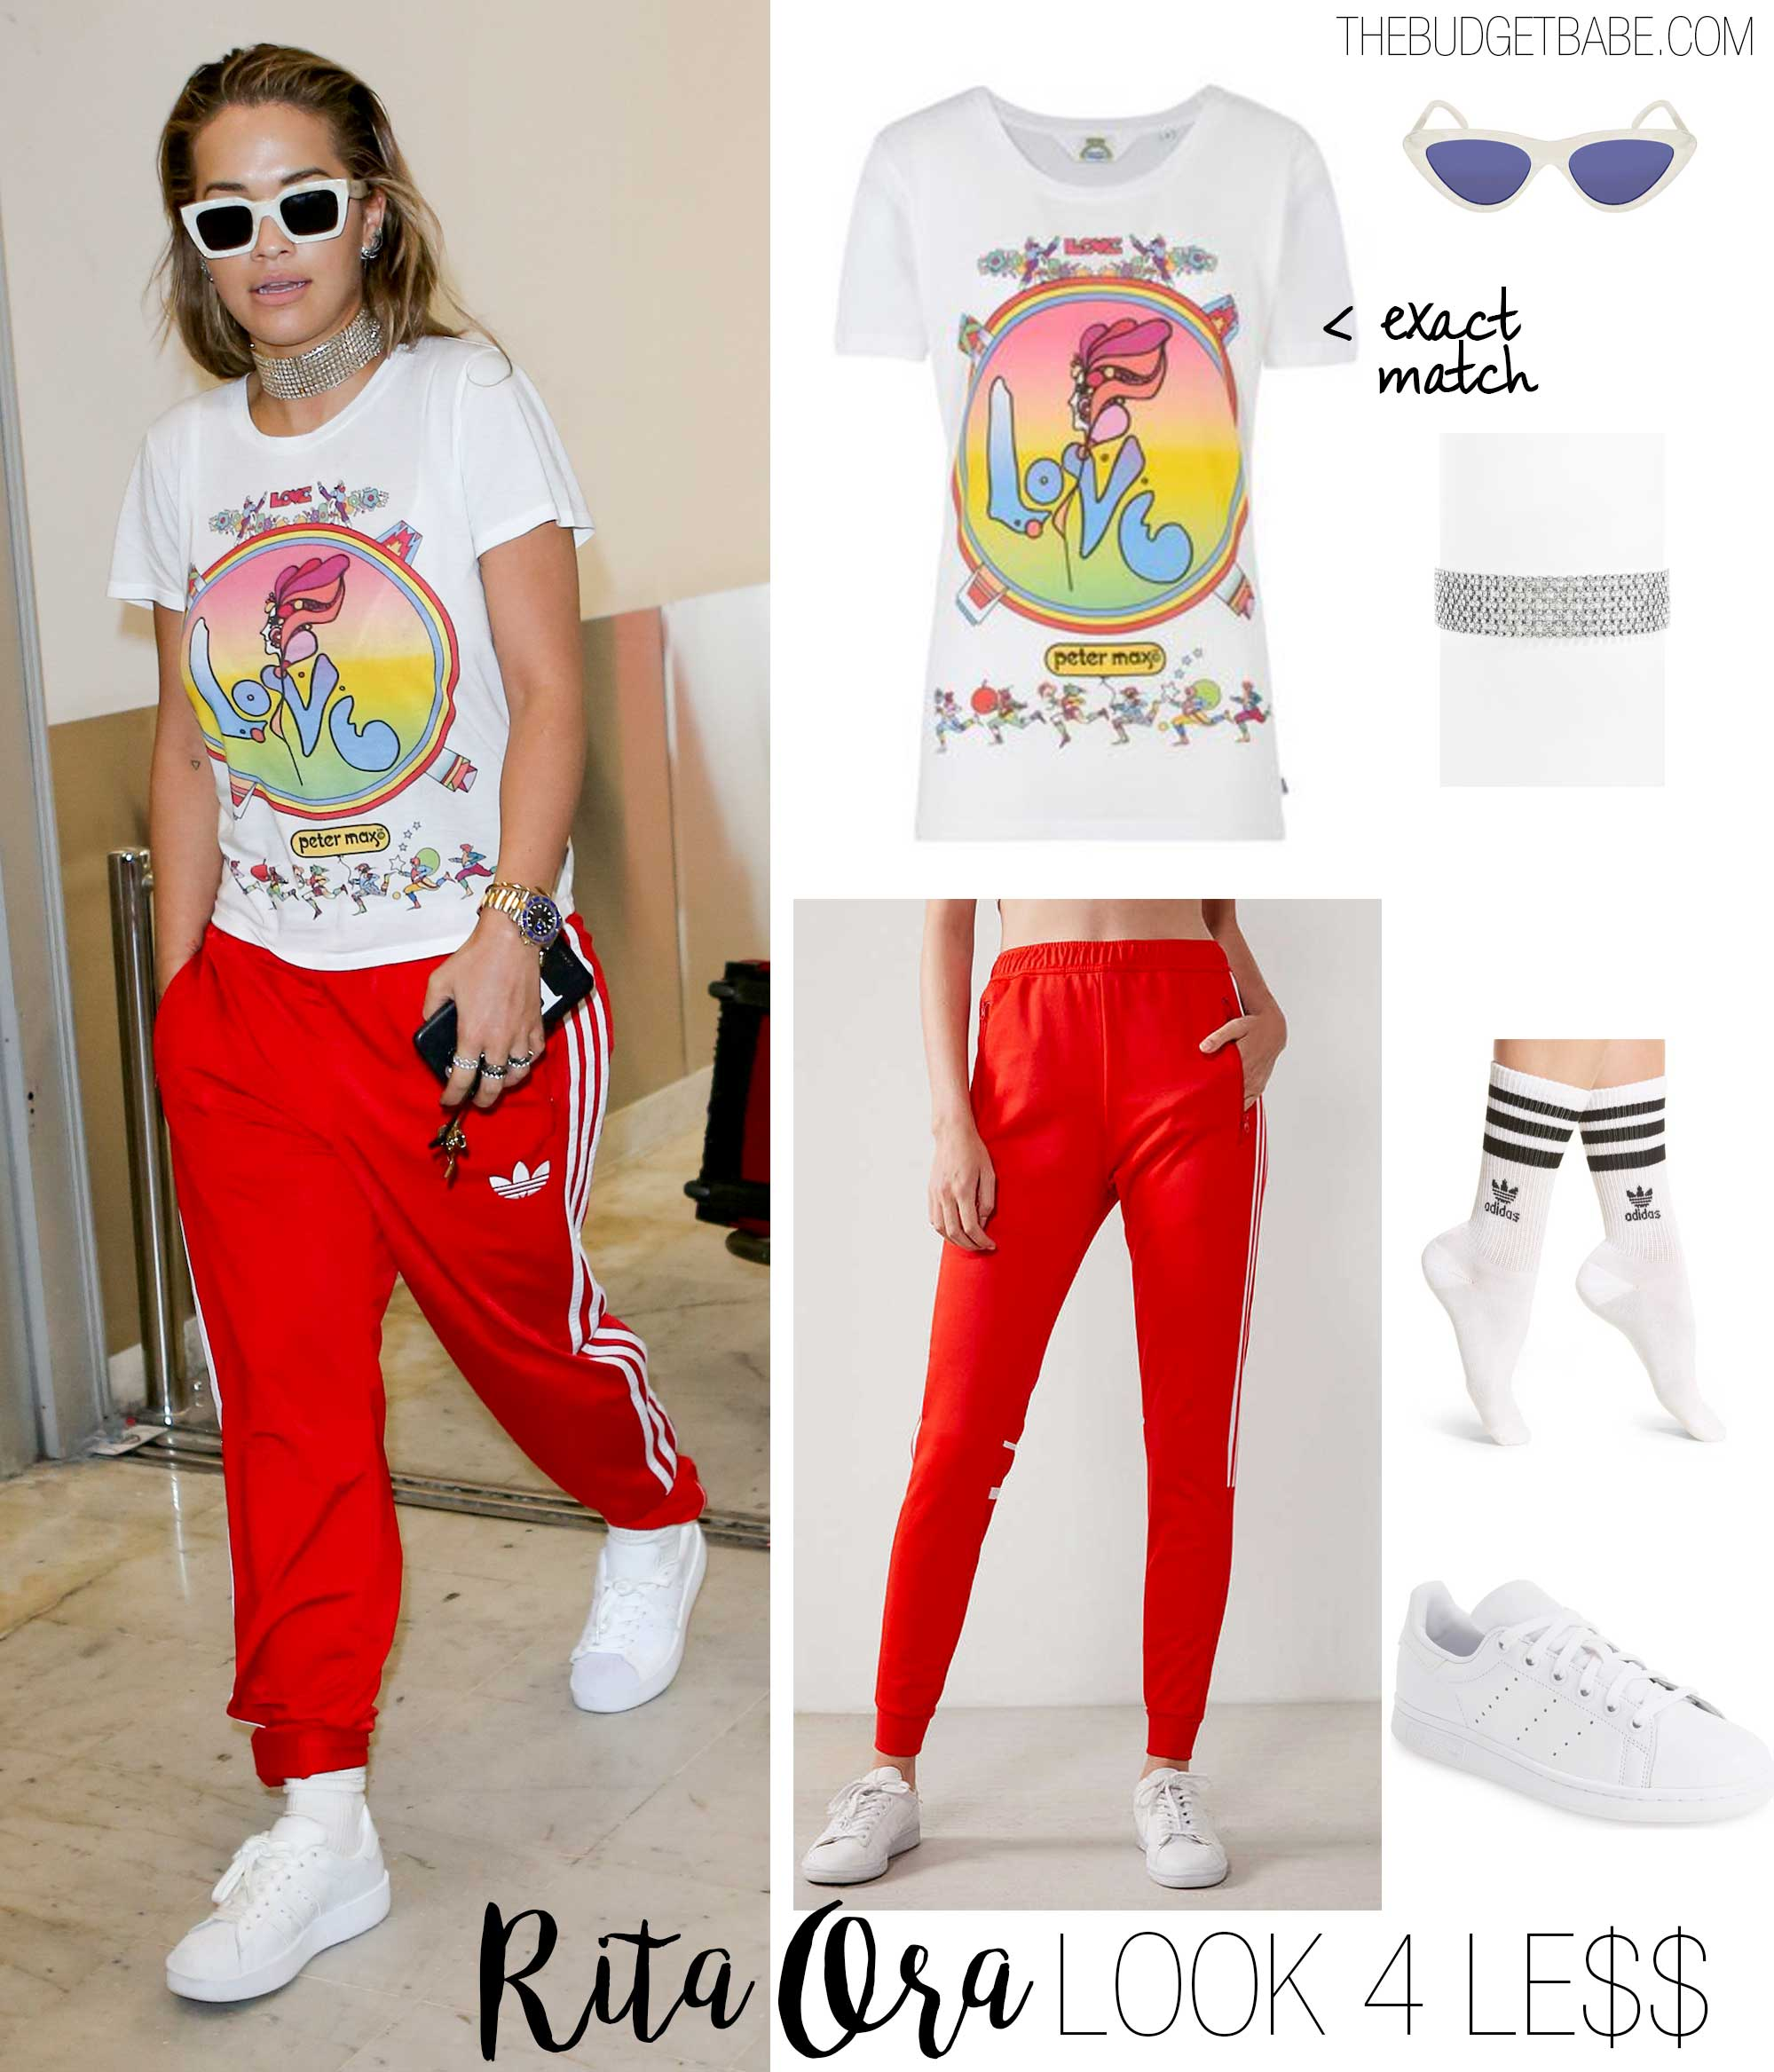 Rita Ora's 'Love' tee and adidas track pants look for less